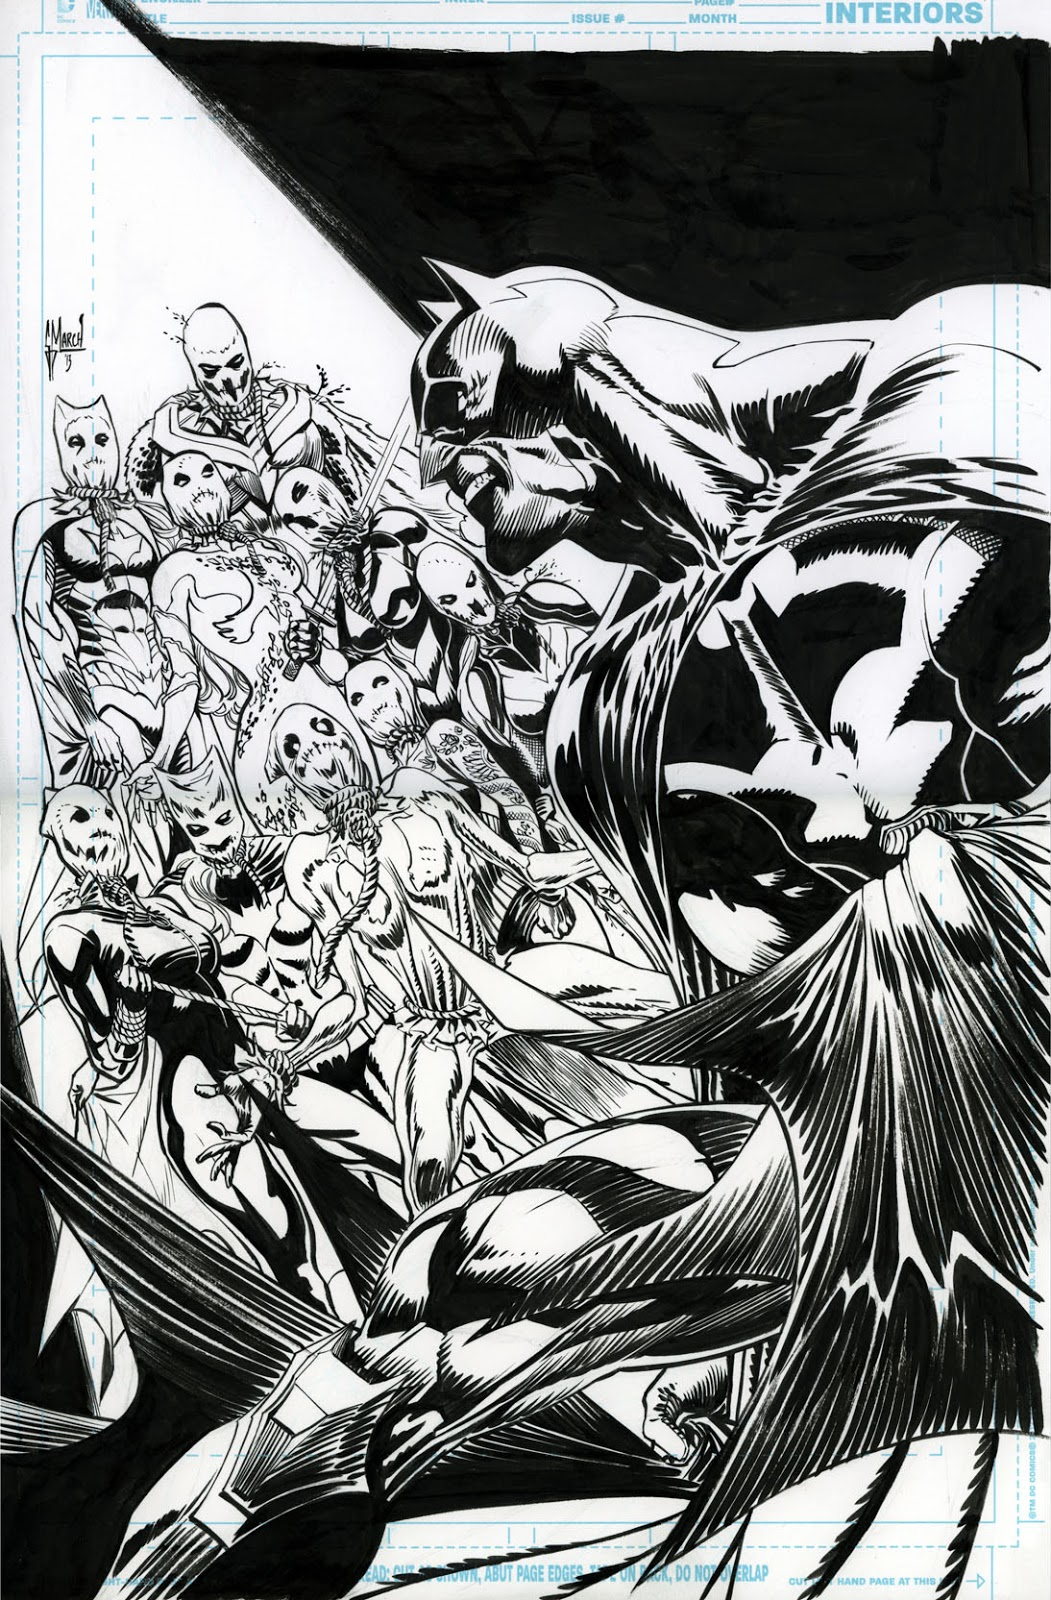 Making of a cover: DETECTIVE COMICS 29 by Guillem March